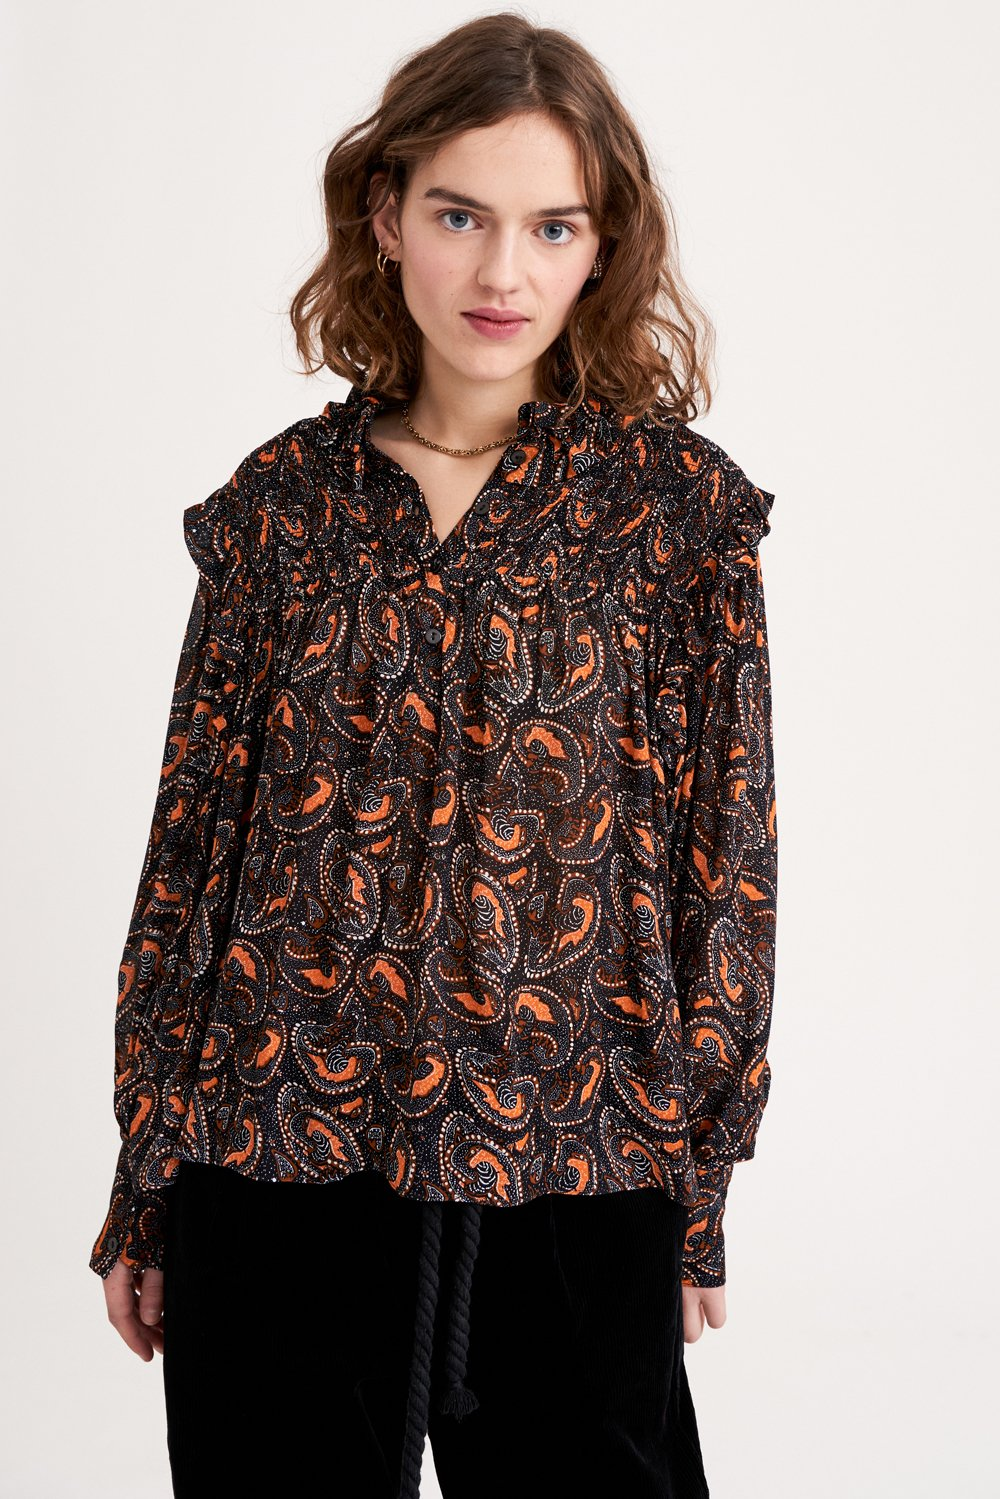 Blouse imprimée Otto - Antik Batik (photo)